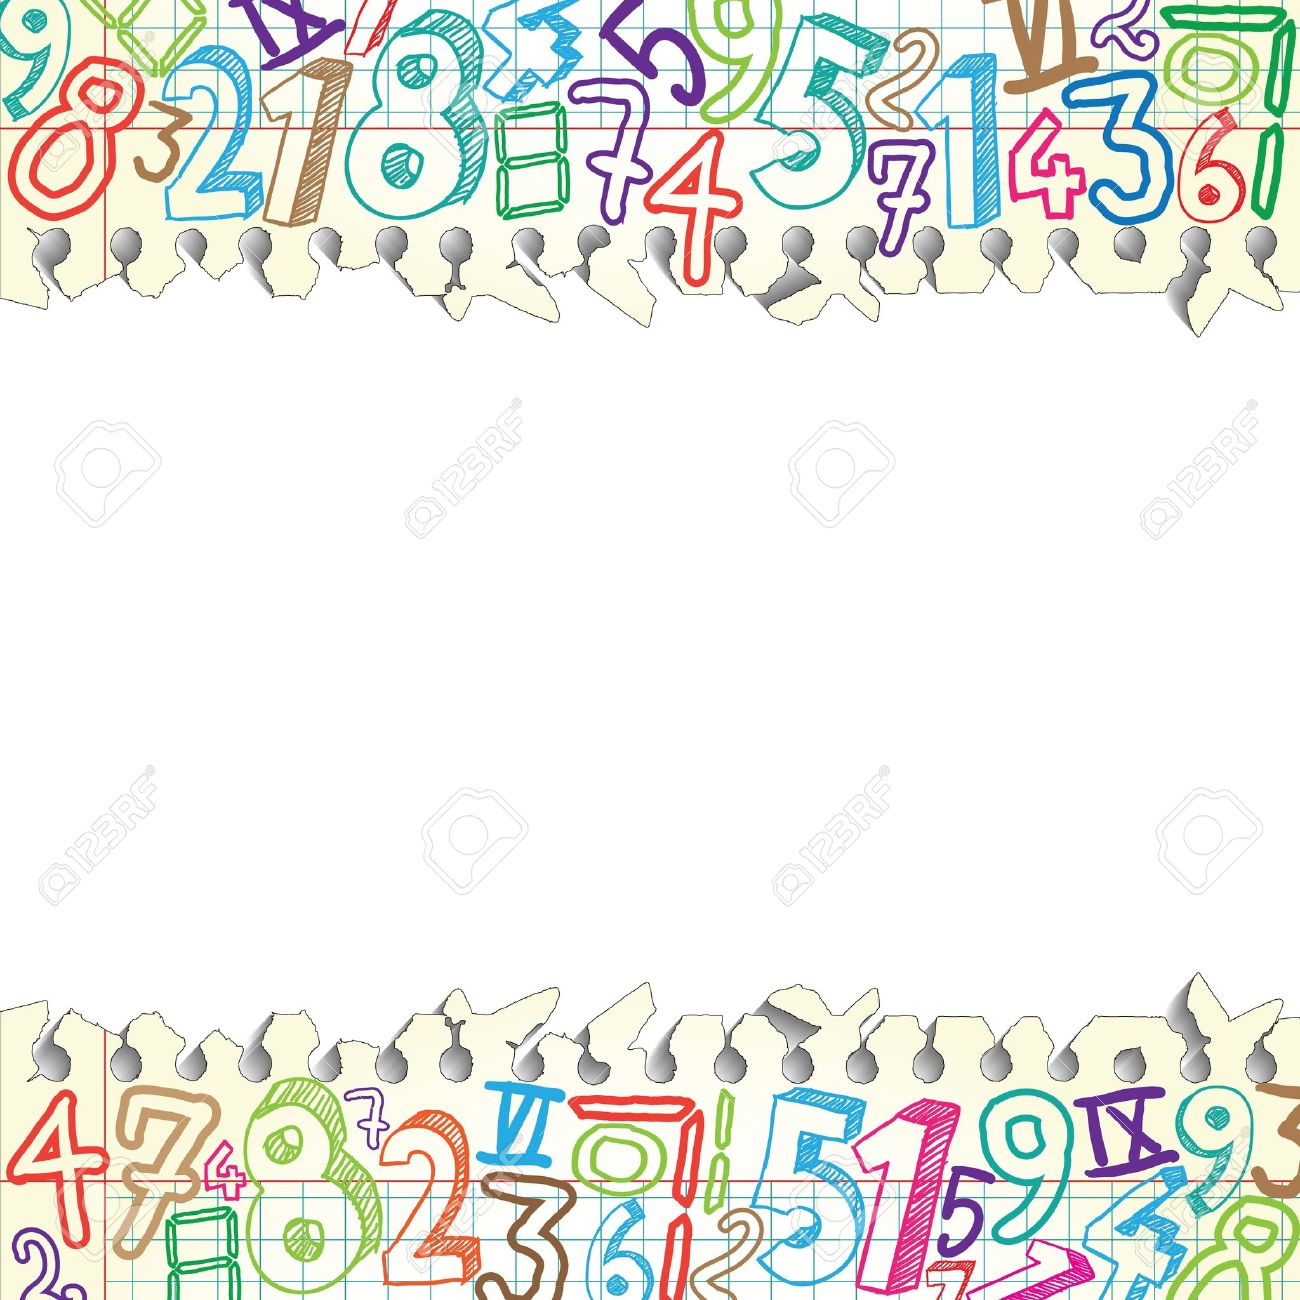 Math background design clipart 5 » Clipart Station.